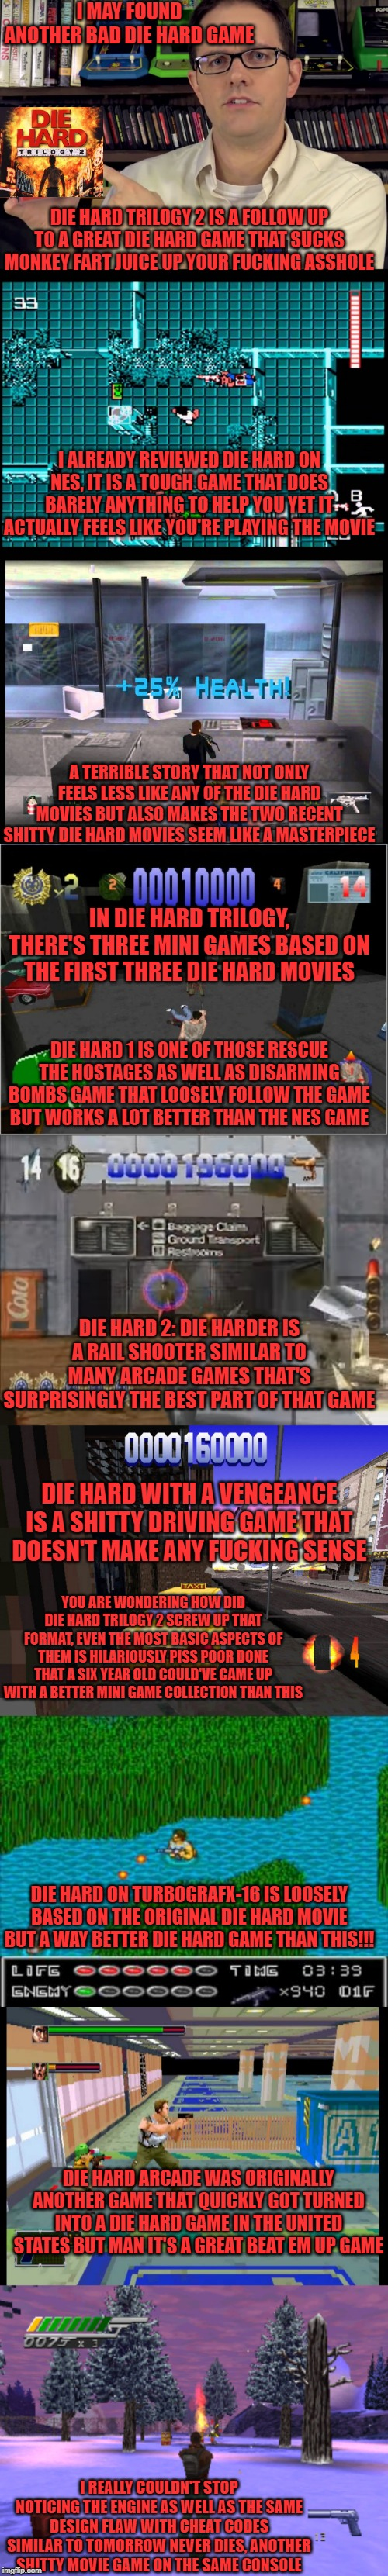 I MAY FOUND ANOTHER BAD DIE HARD GAME I REALLY COULDN'T STOP NOTICING THE ENGINE AS WELL AS THE SAME DESIGN FLAW WITH CHEAT CODES SIMILAR TO | image tagged in avgn,die hard,disney,movies,terrible | made w/ Imgflip meme maker